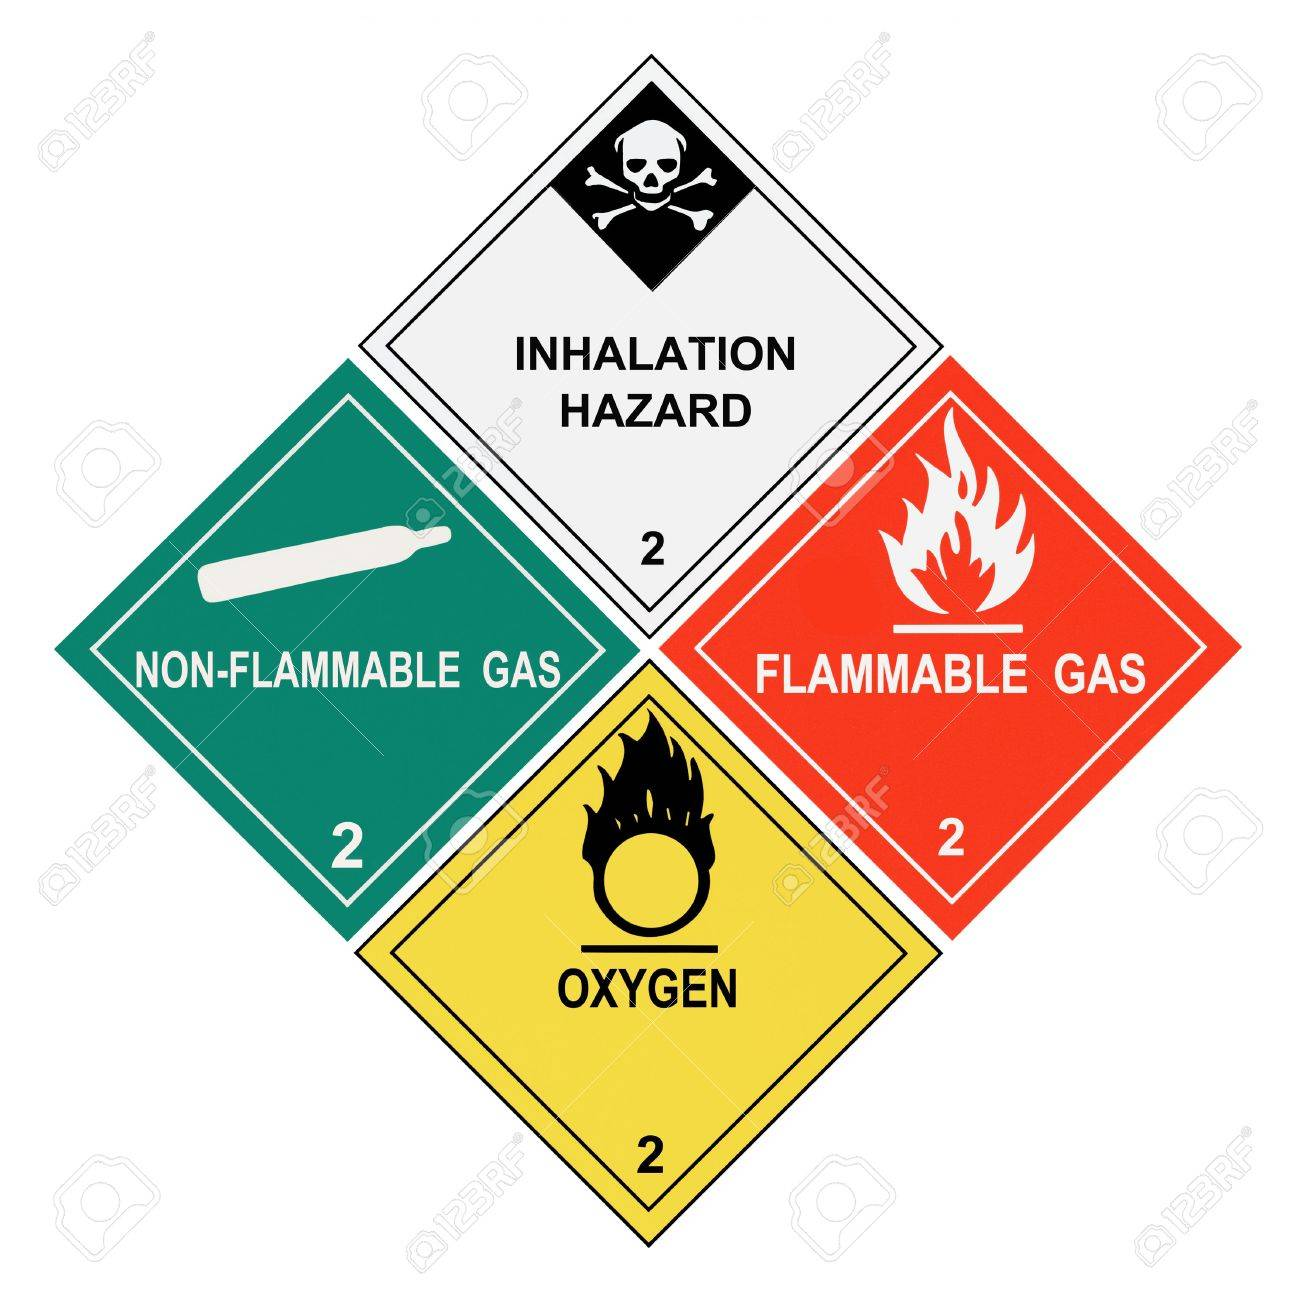 United States Department of Transportation class 2 gases warning labels isolated on white Stock Photo - 4743605